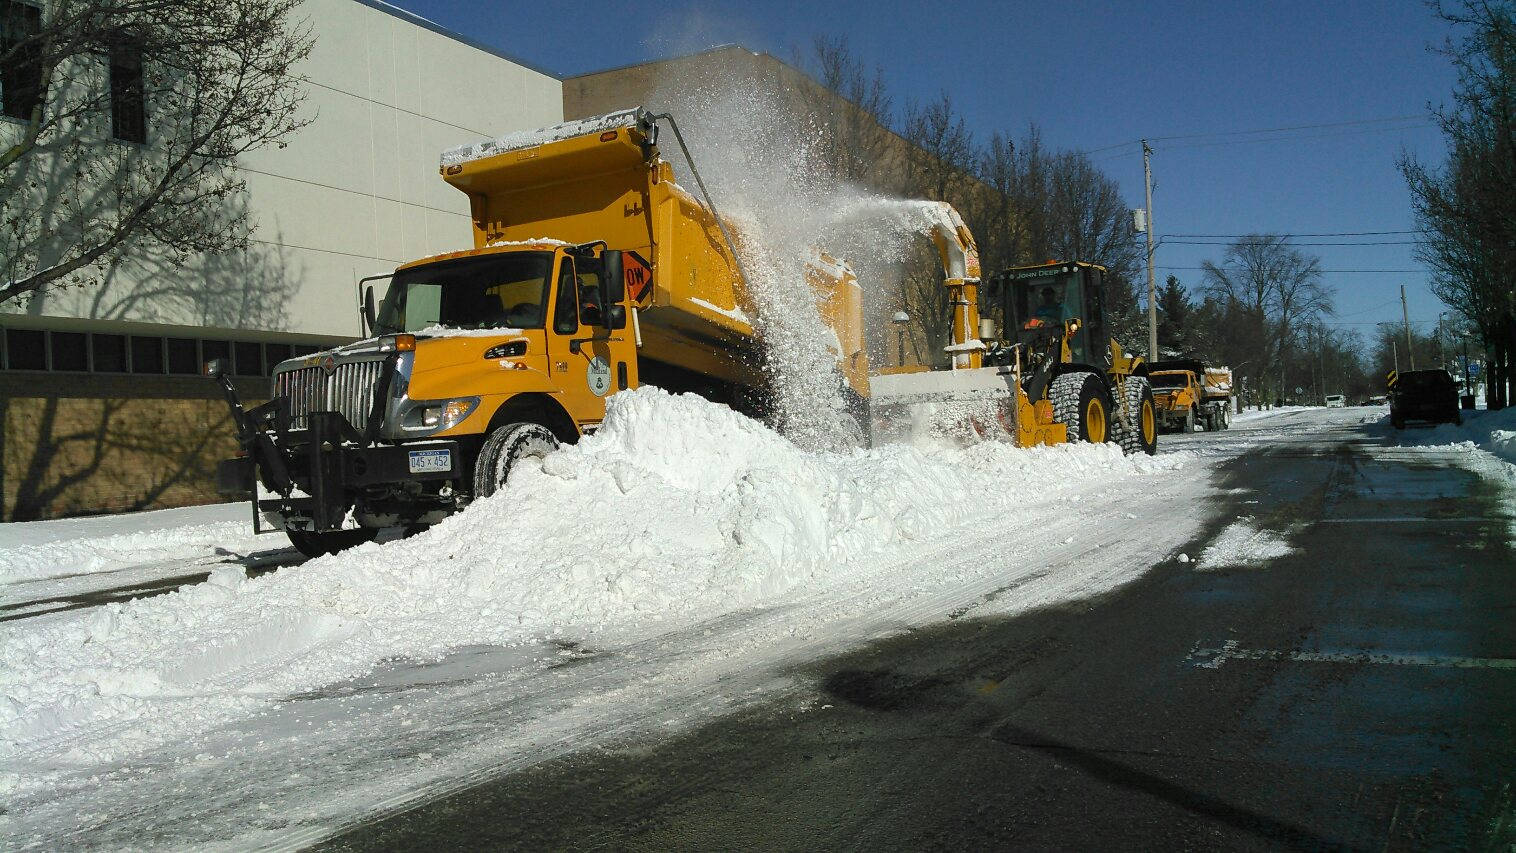 Snow Removal Downtown trucks on road